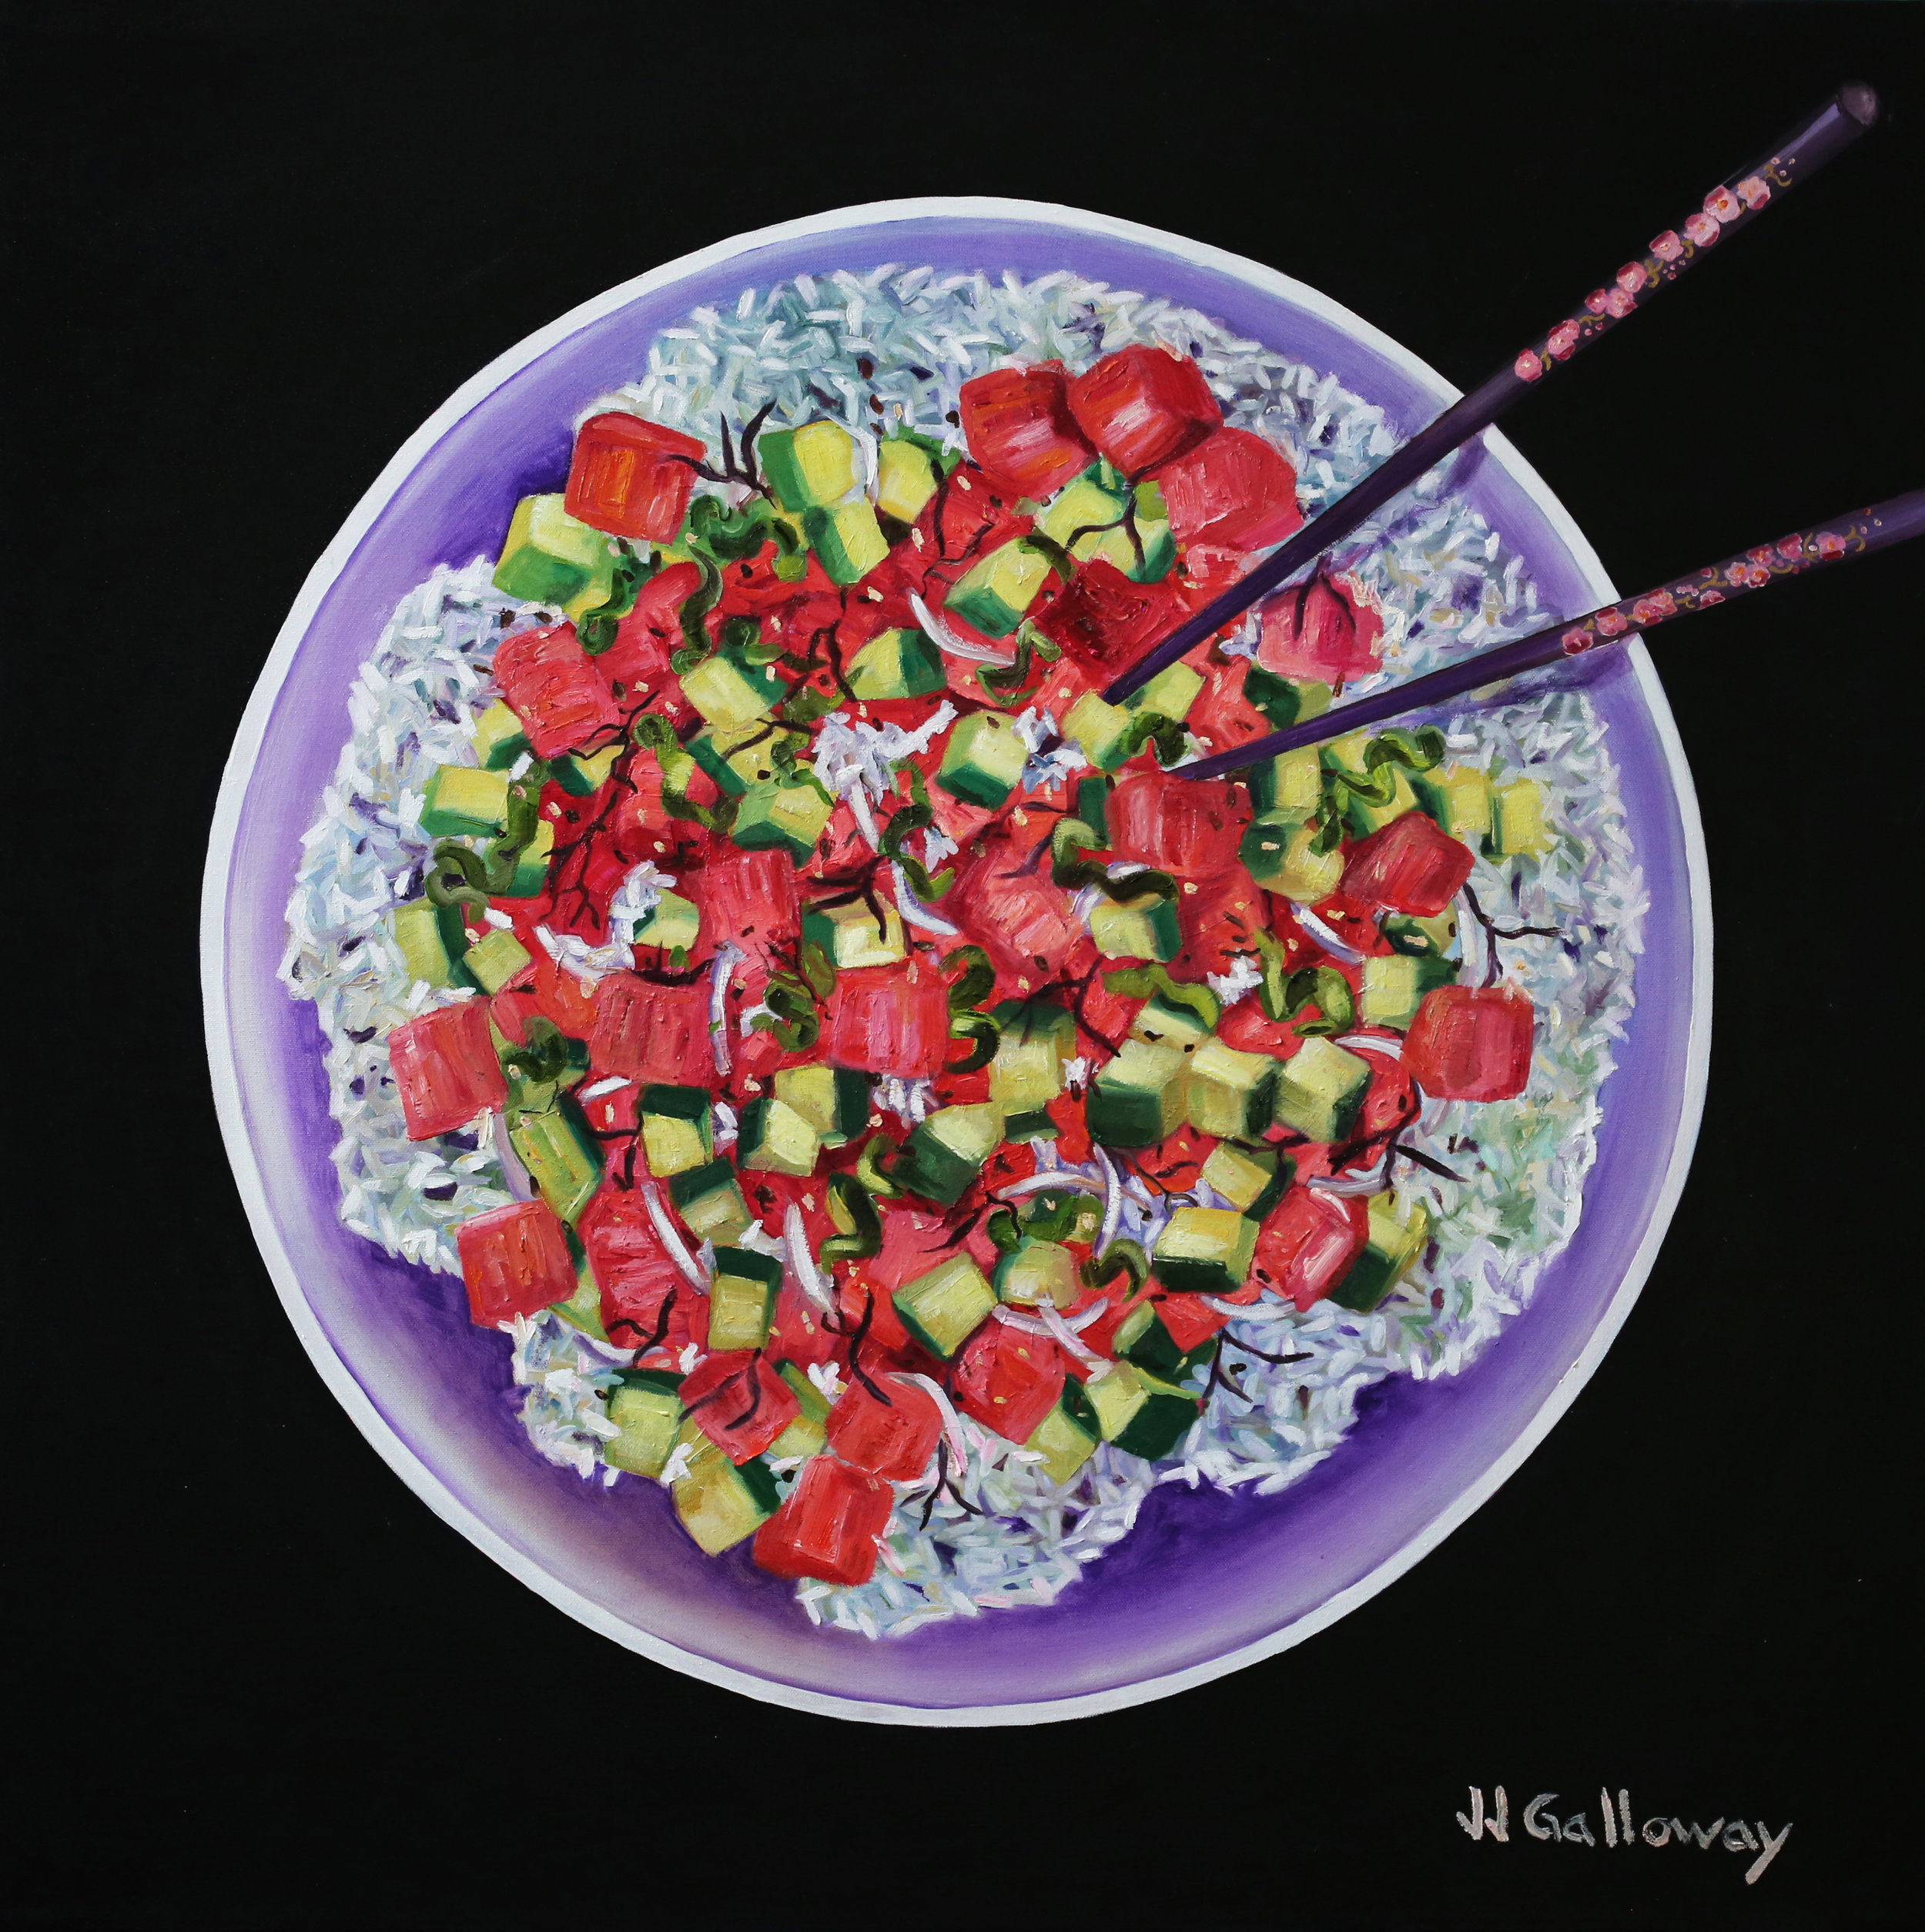 """Poke Bowl""   Oil painting on stretched canvas Finished black edges Varnished and Ready to hang   One-of-a-kind Signed on front 2018  36"" h x 36"" w x 1"" d 3 lbs. 0 oz.  Click   HERE   for more information."